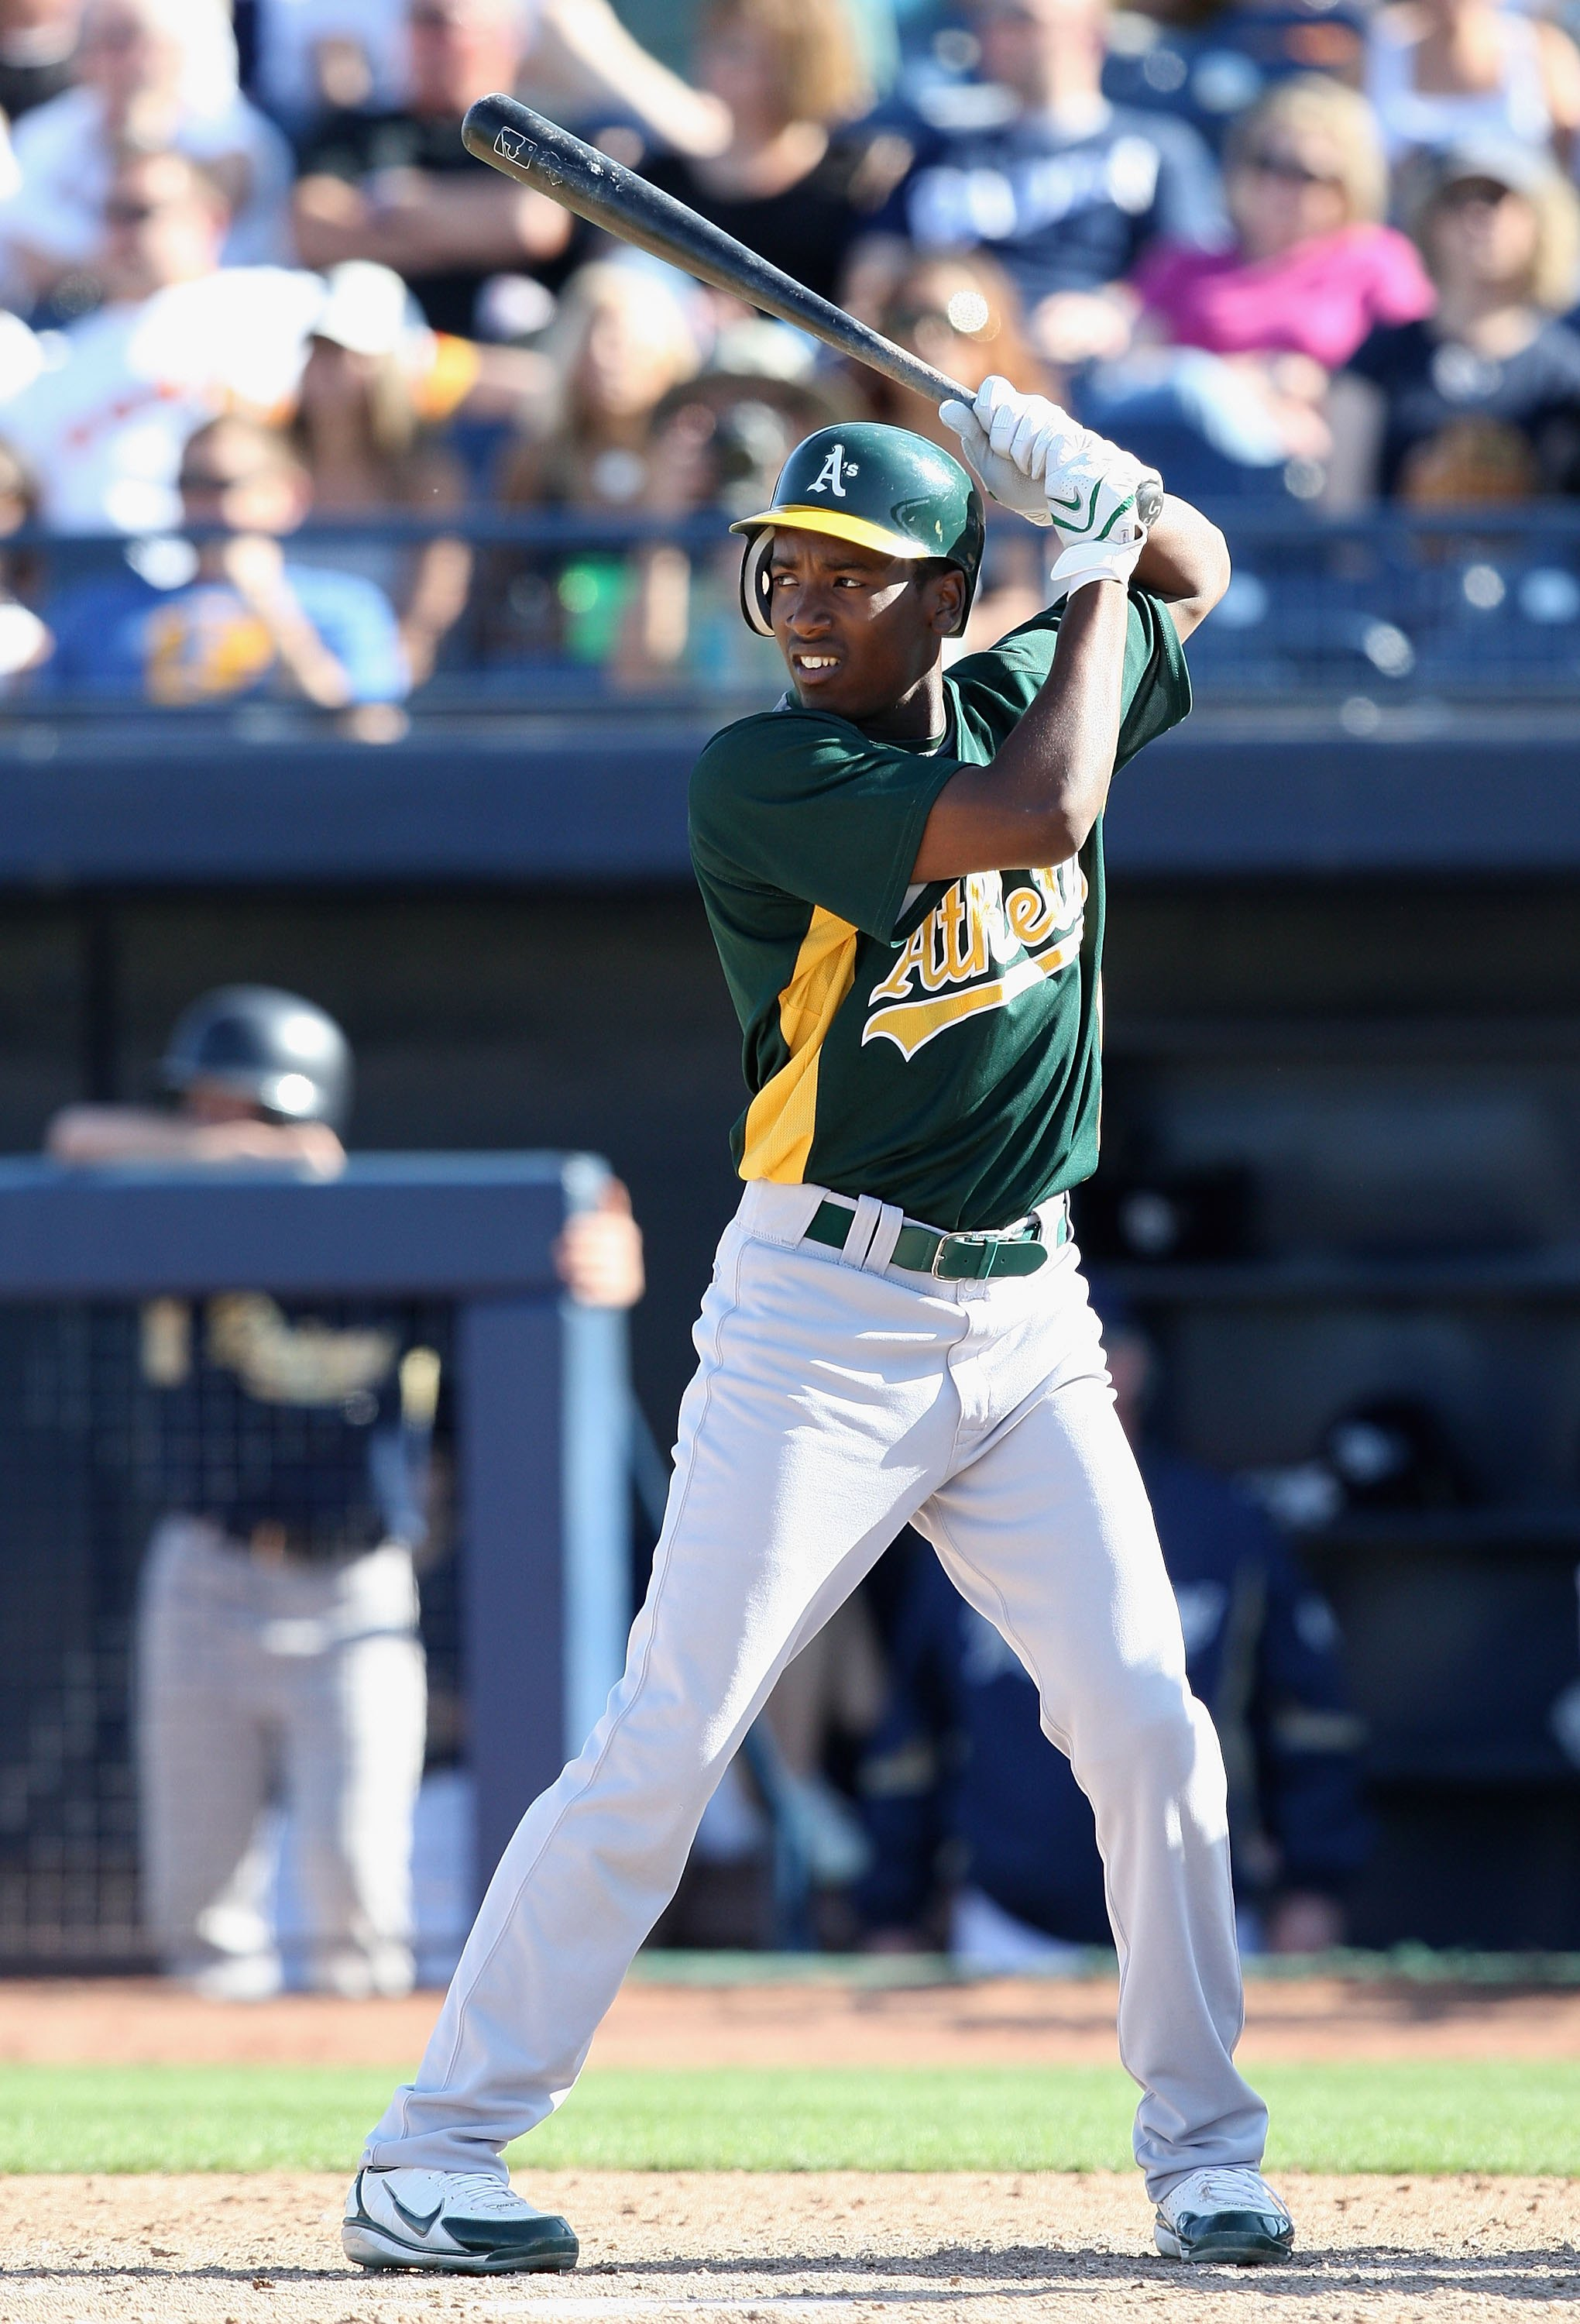 PEORIA, AZ - MARCH 07:  Jemile Weeks #53 of the Oakland Athletics bats agaisnt the San Diego Padres during the spring training game at Peoria Stadium on March 7, 2009 in Peoria, Arizona  The A's defeated the Padres 15-6.  (Photo by Christian Petersen/Gett